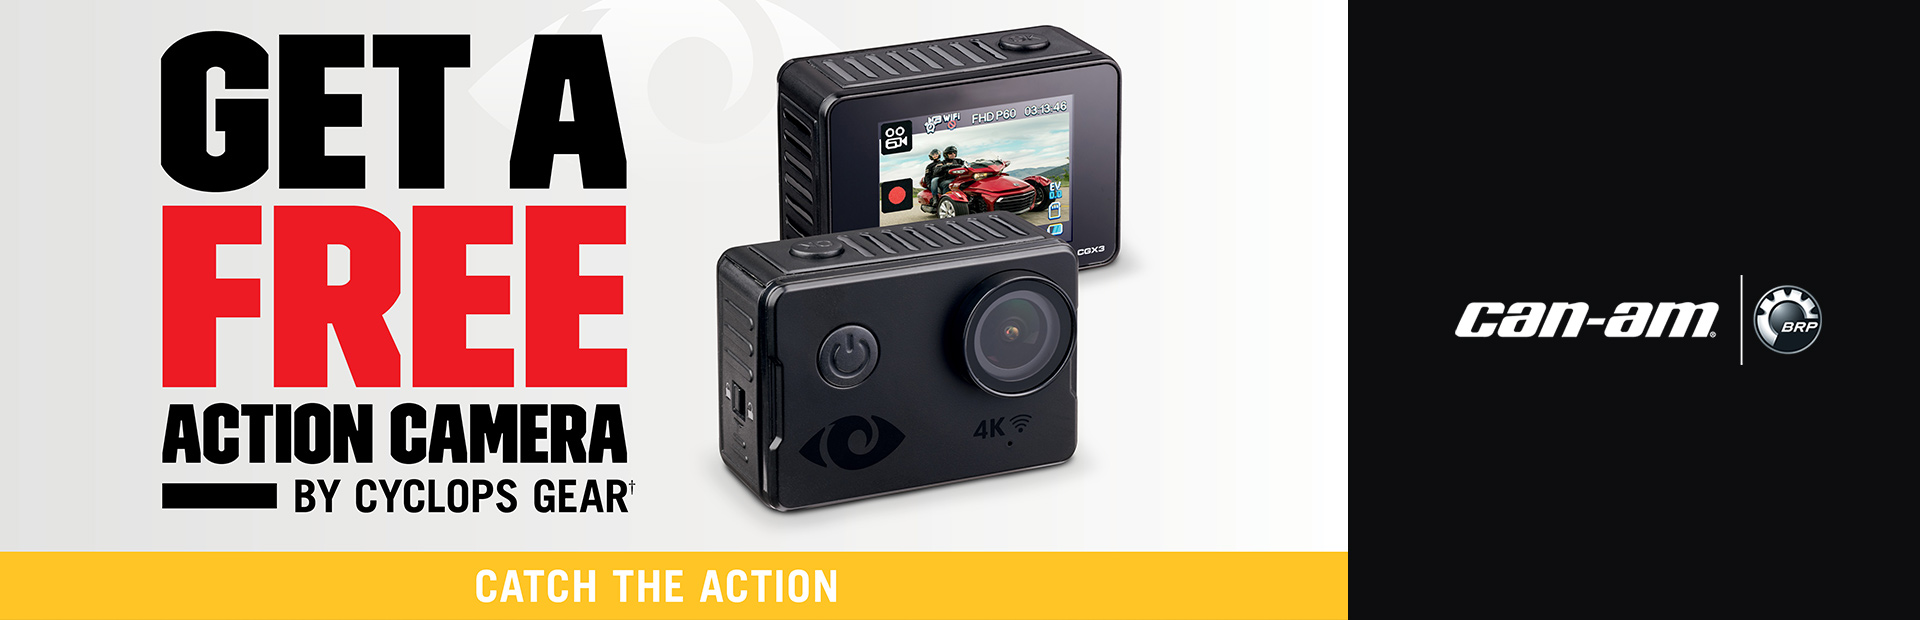 Can-Am: Action Camera Promotion